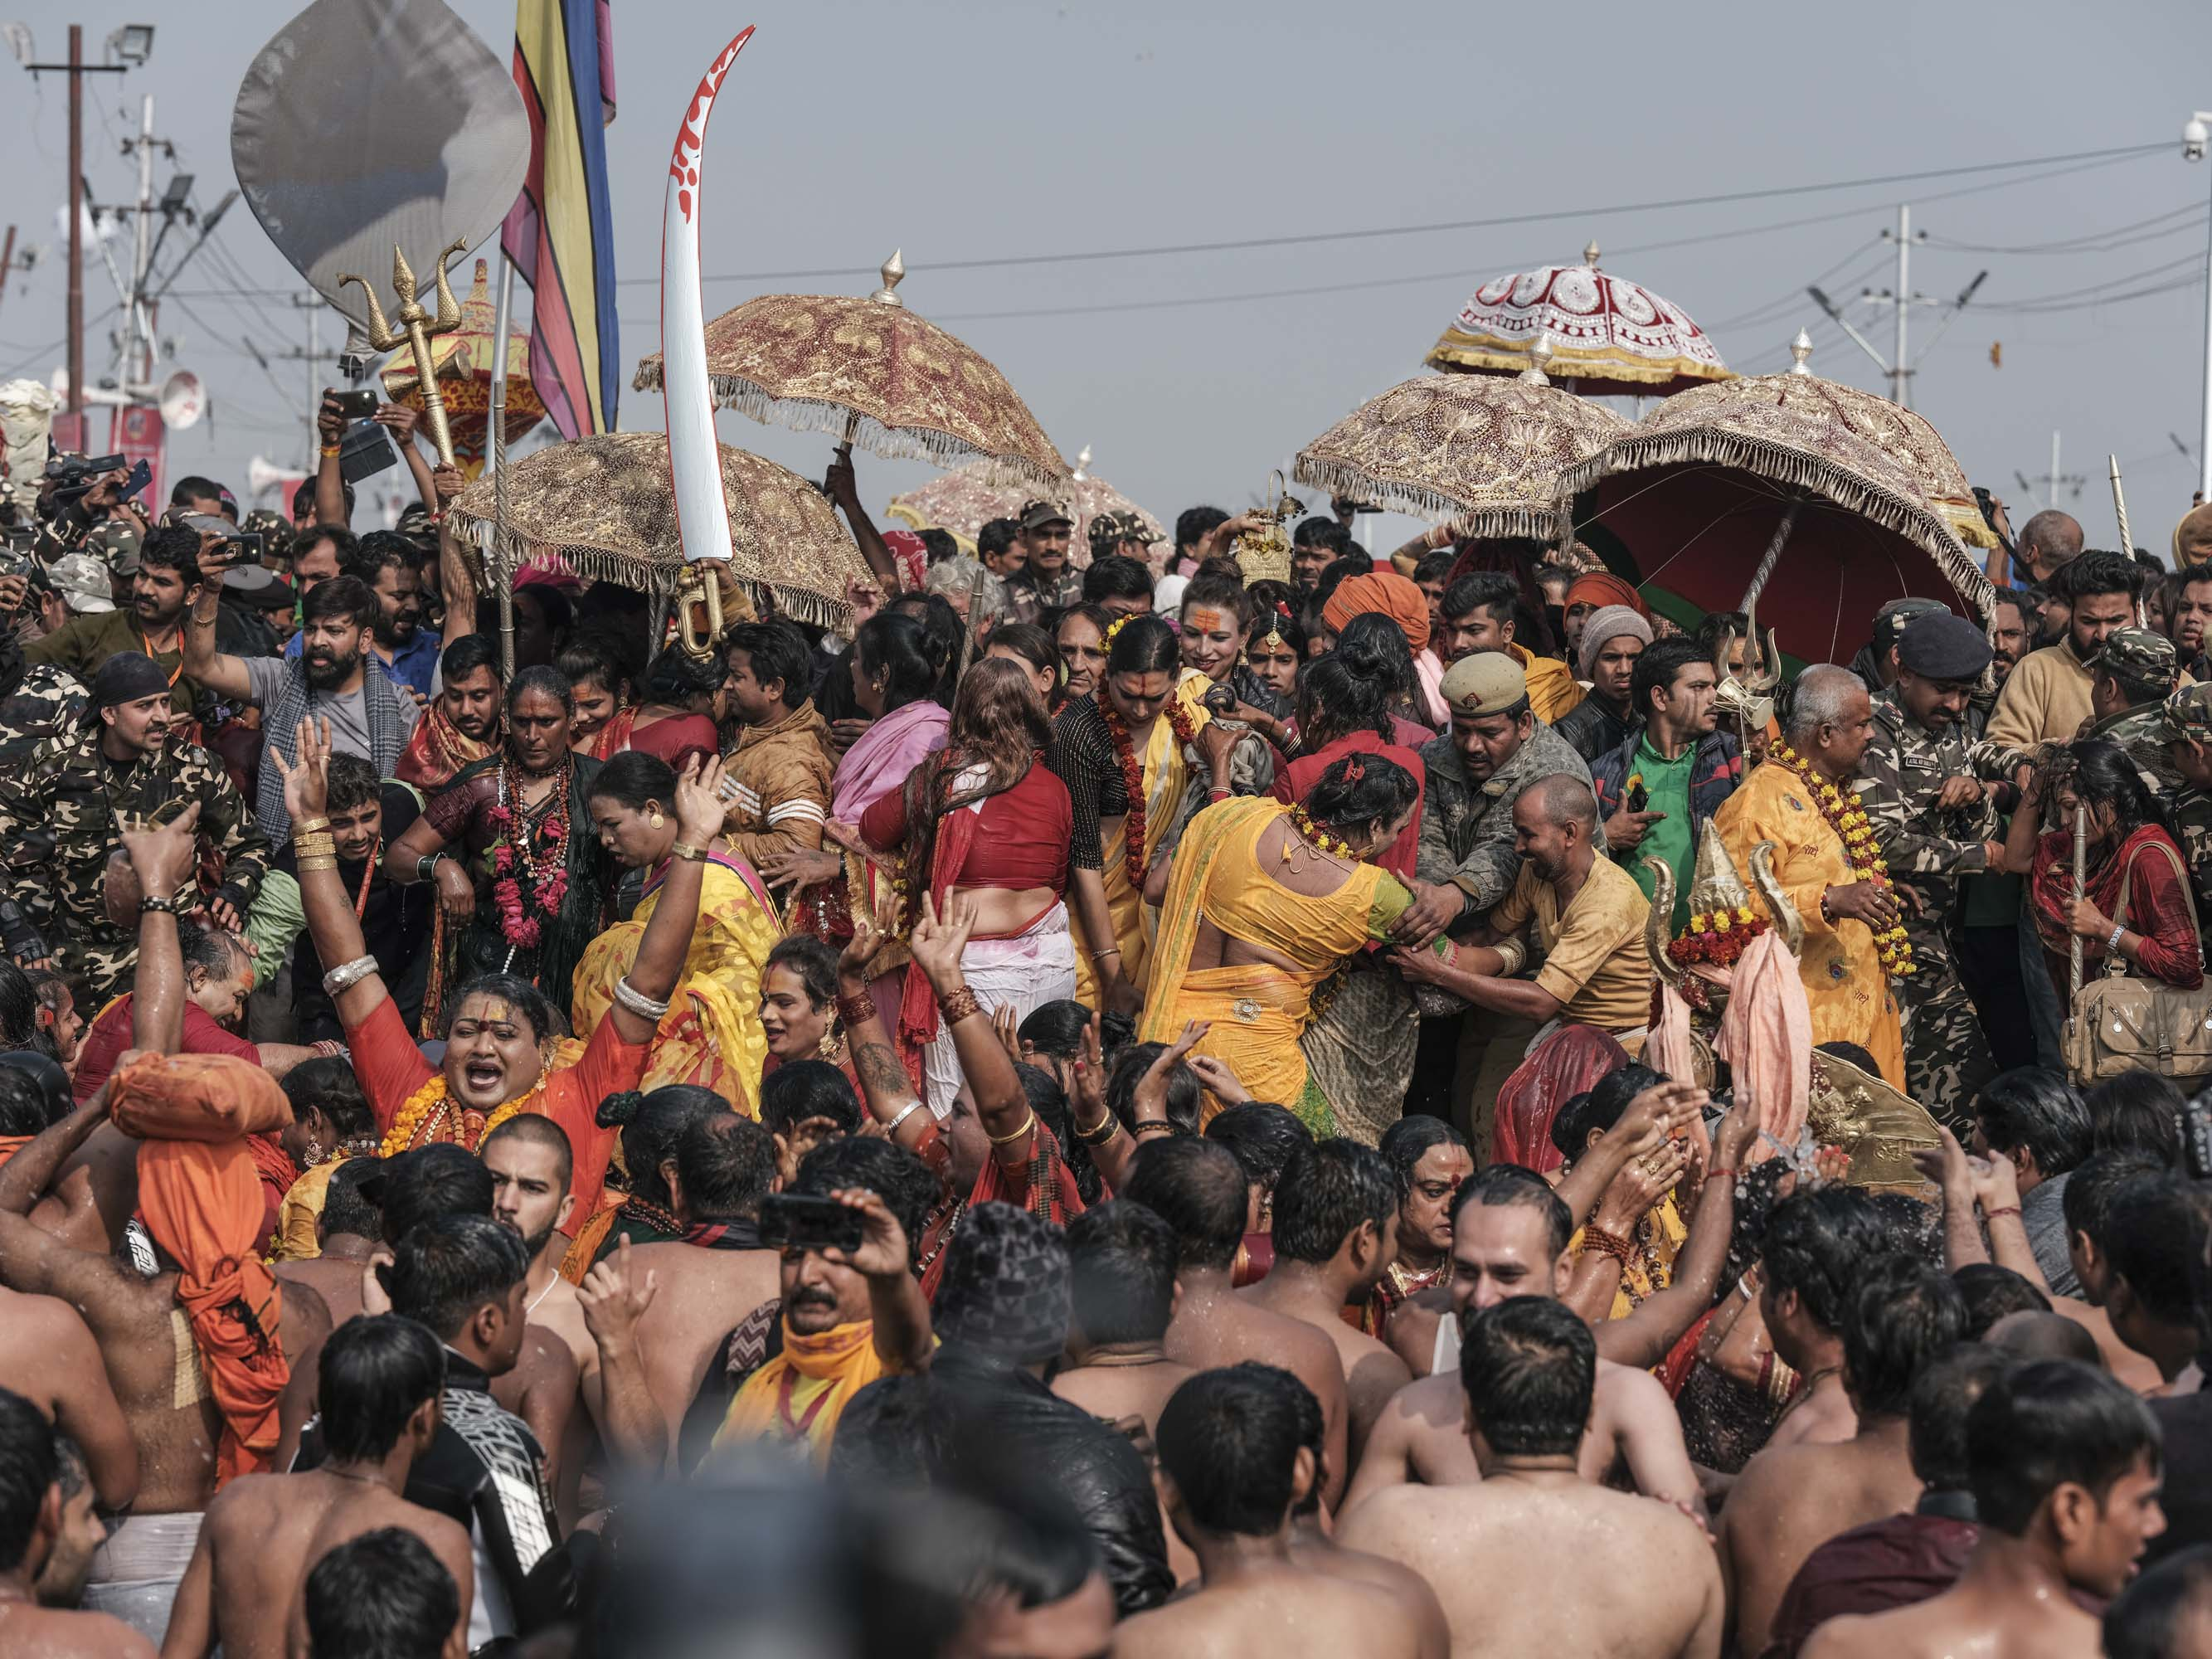 transgender crowd 4 February pilgrims Kumbh mela 2019 India Allahabad Prayagraj Ardh hindu religious Festival event rivers photographer jose jeuland photography